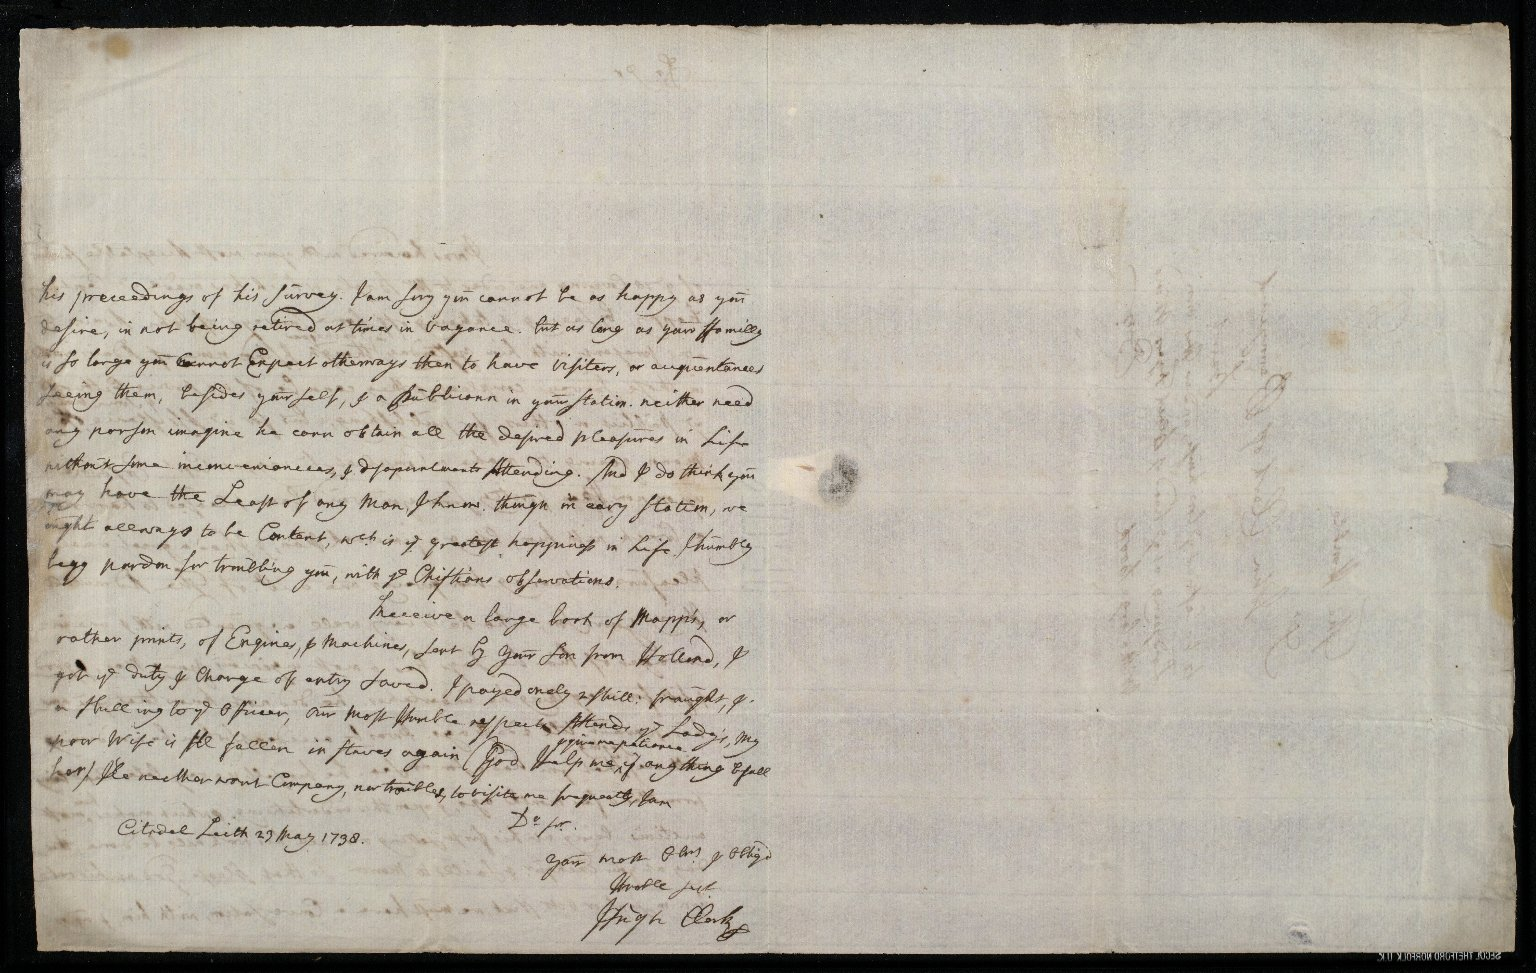 [Letter from Hugh Clerk, Citadell, Leith, to Sir John Clerk of Penicuik concerning approval of loan of Adair's maps for Captain Erskine's survey] [2 of 2]